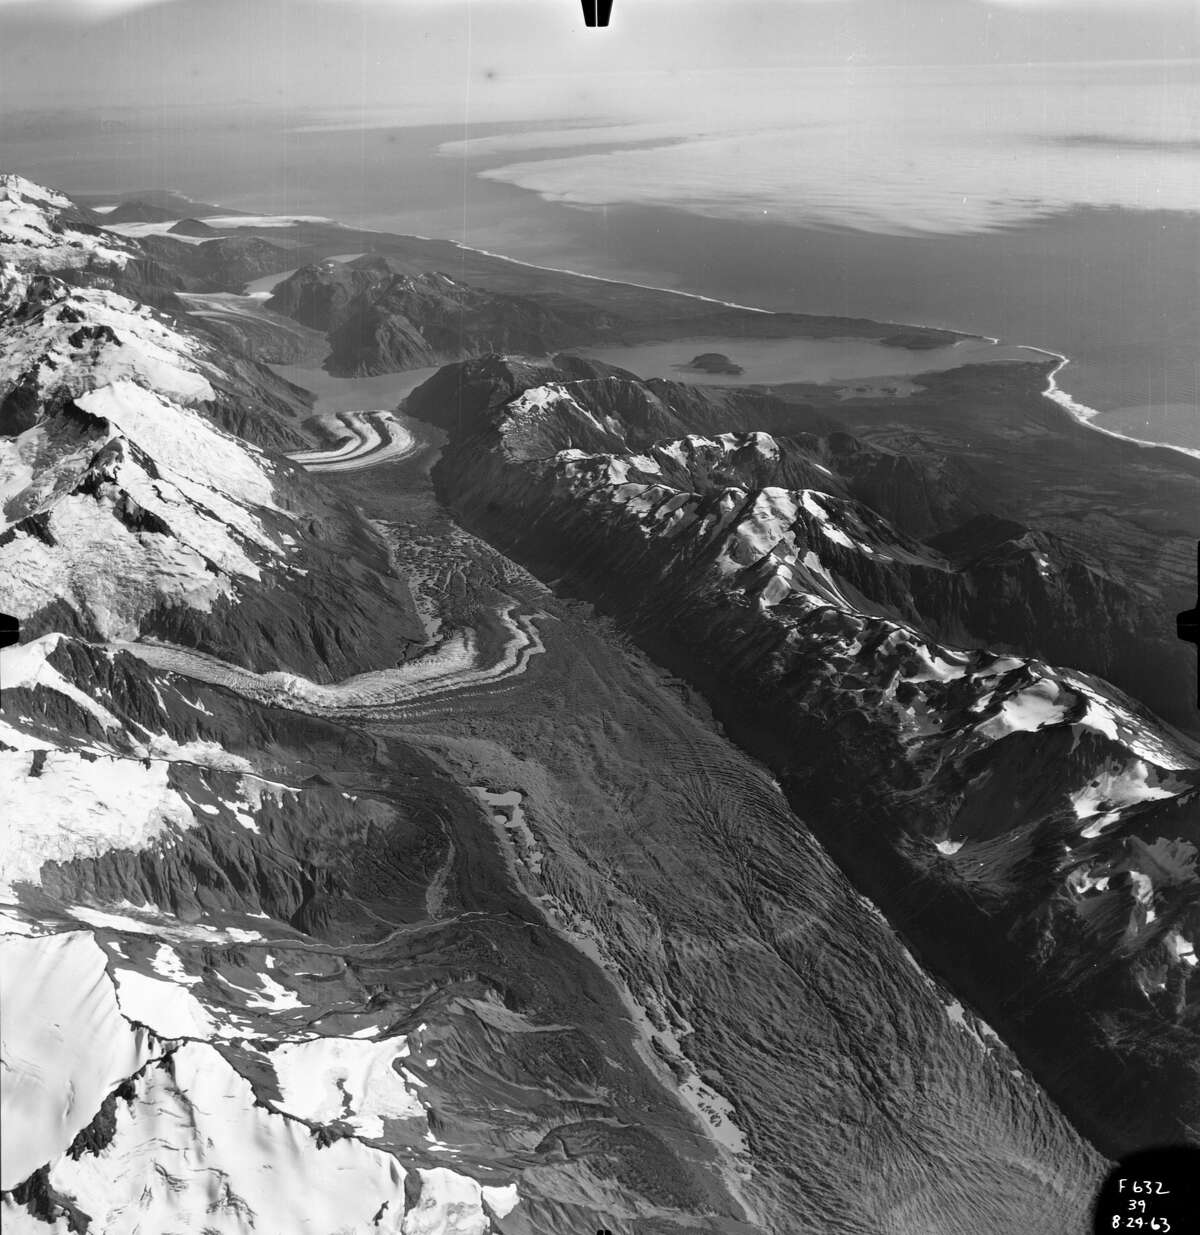 Lituya Bay earthquake1958Magnitude: 7.8 This quake in a fjord on the Alaskan panhandle triggered a massive rock slide in narrow Lituya Bay. The rock slide caused the largest tsunami in modern-day history, which killed five people.